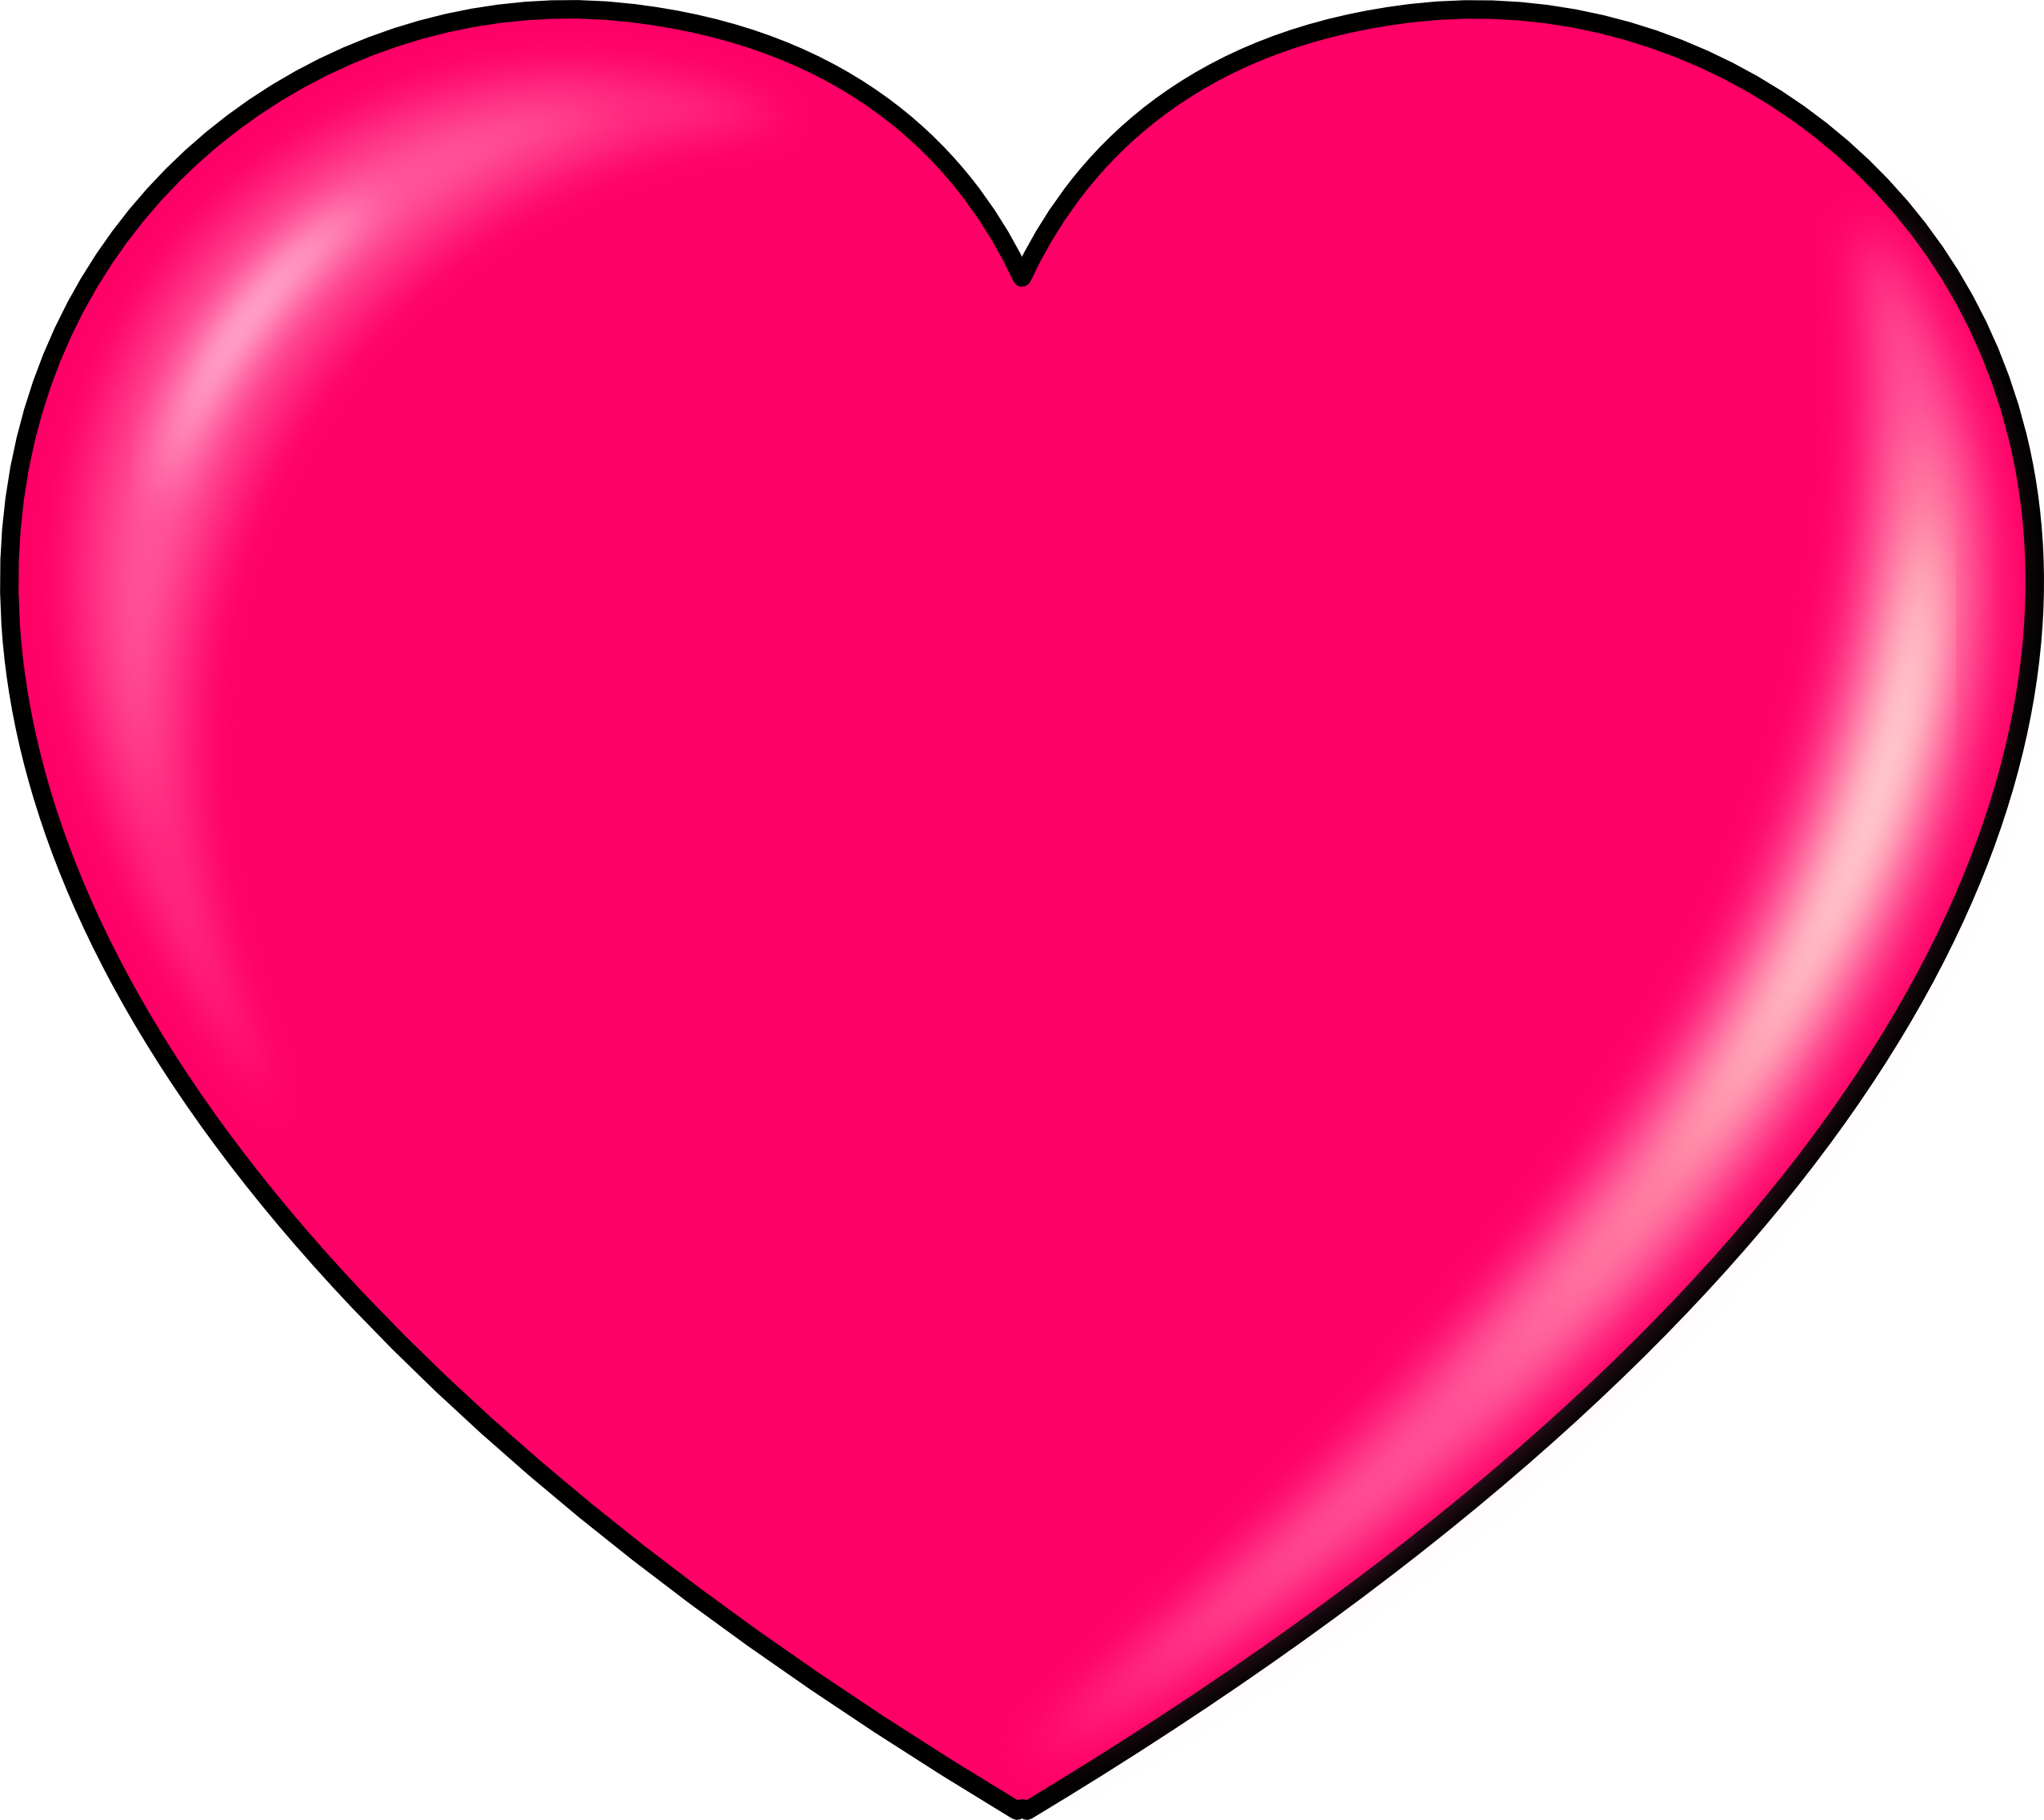 Pink heart PNG image, free download - Heart PNG HD Transparent Background